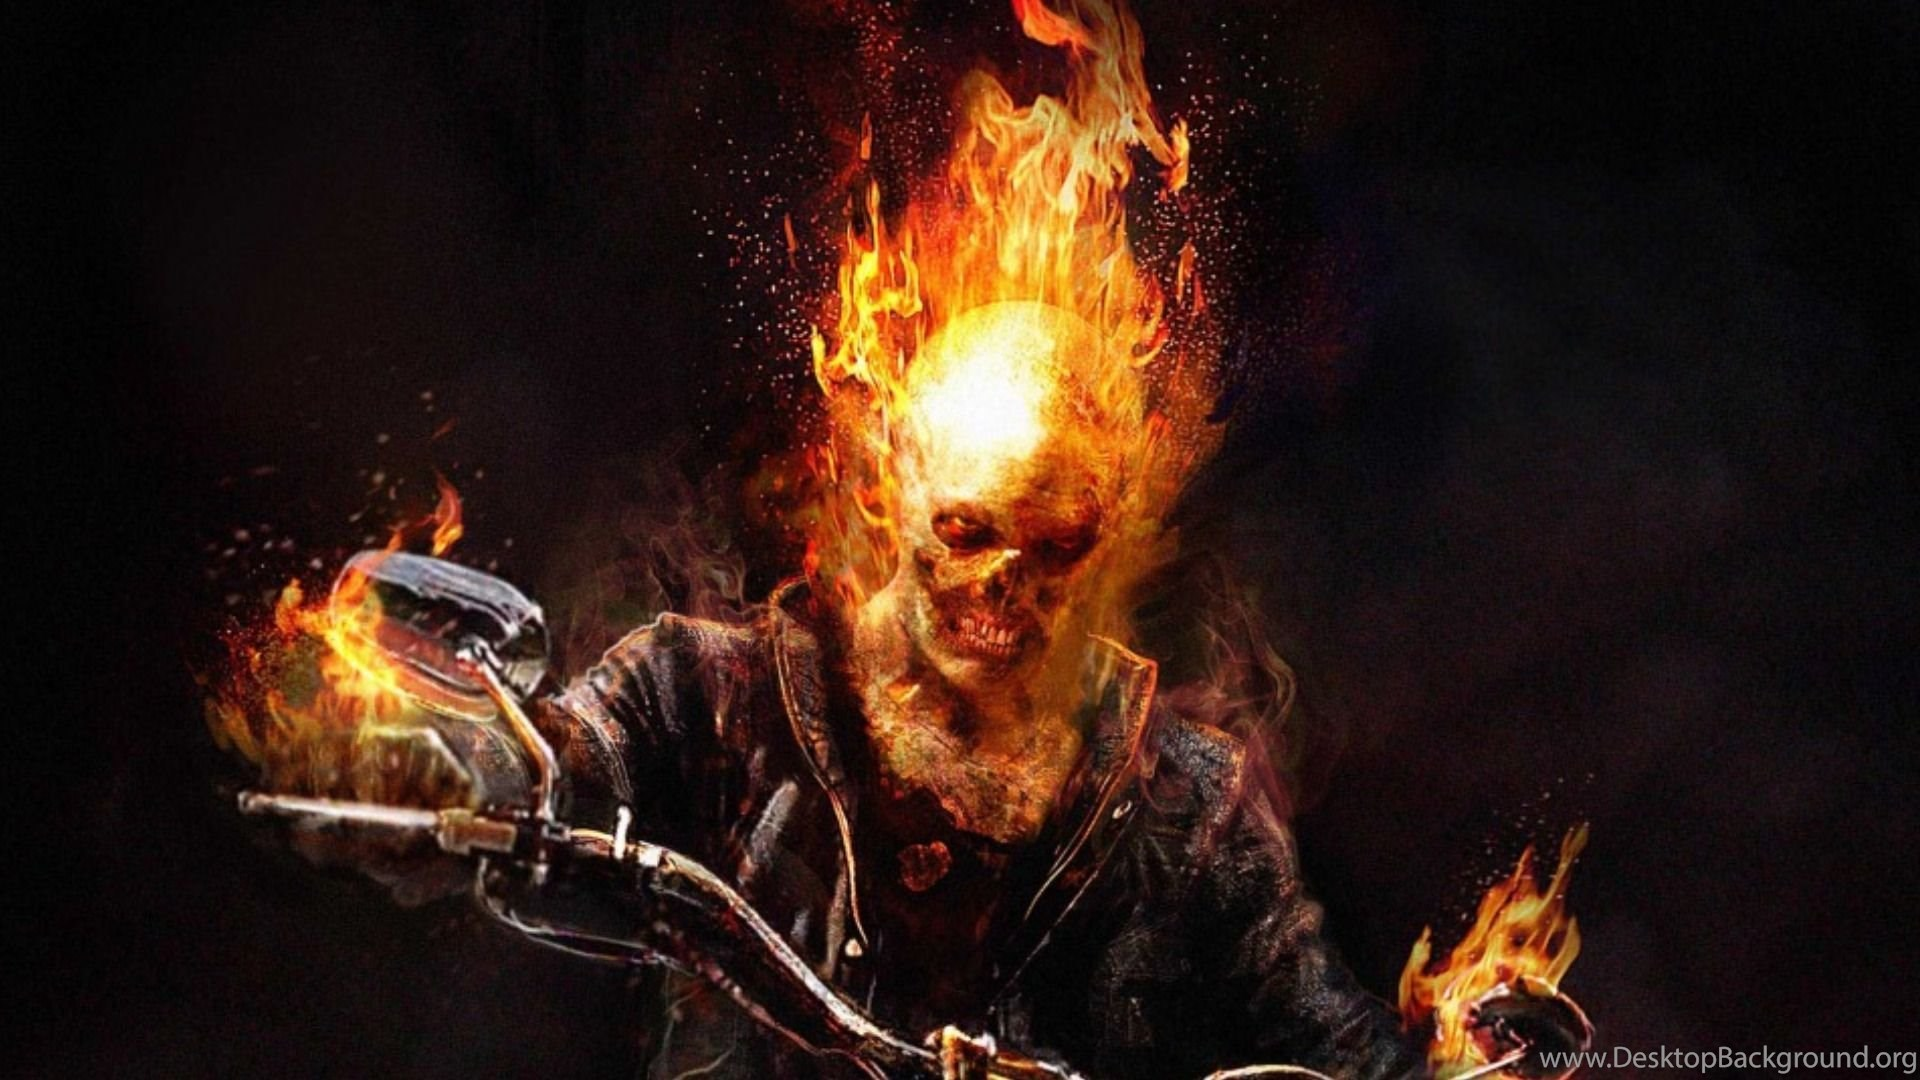 download ghost rider wallpapers picture desktop background